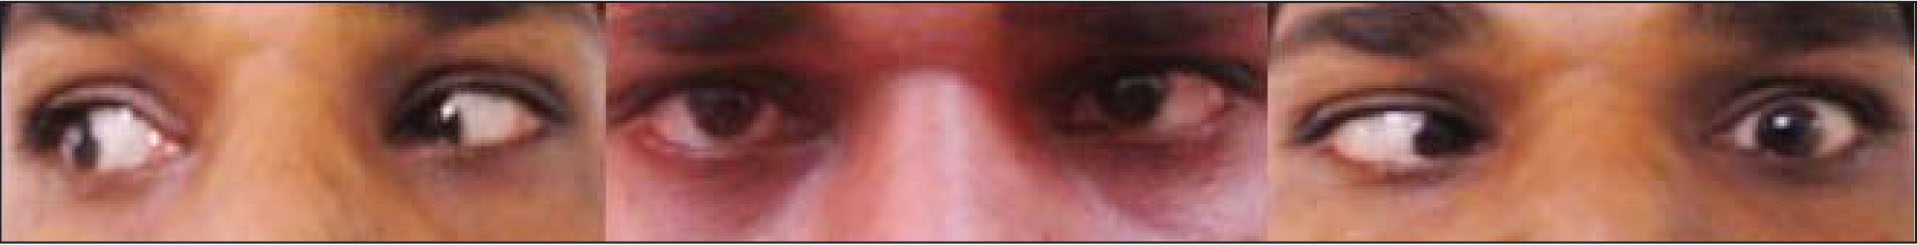 Left esotropia with complete lack of abduction in the left eye, palpebral fissure narrowing, and globe retraction on adduction suggestive of type 1 Duane retraction syndrome.